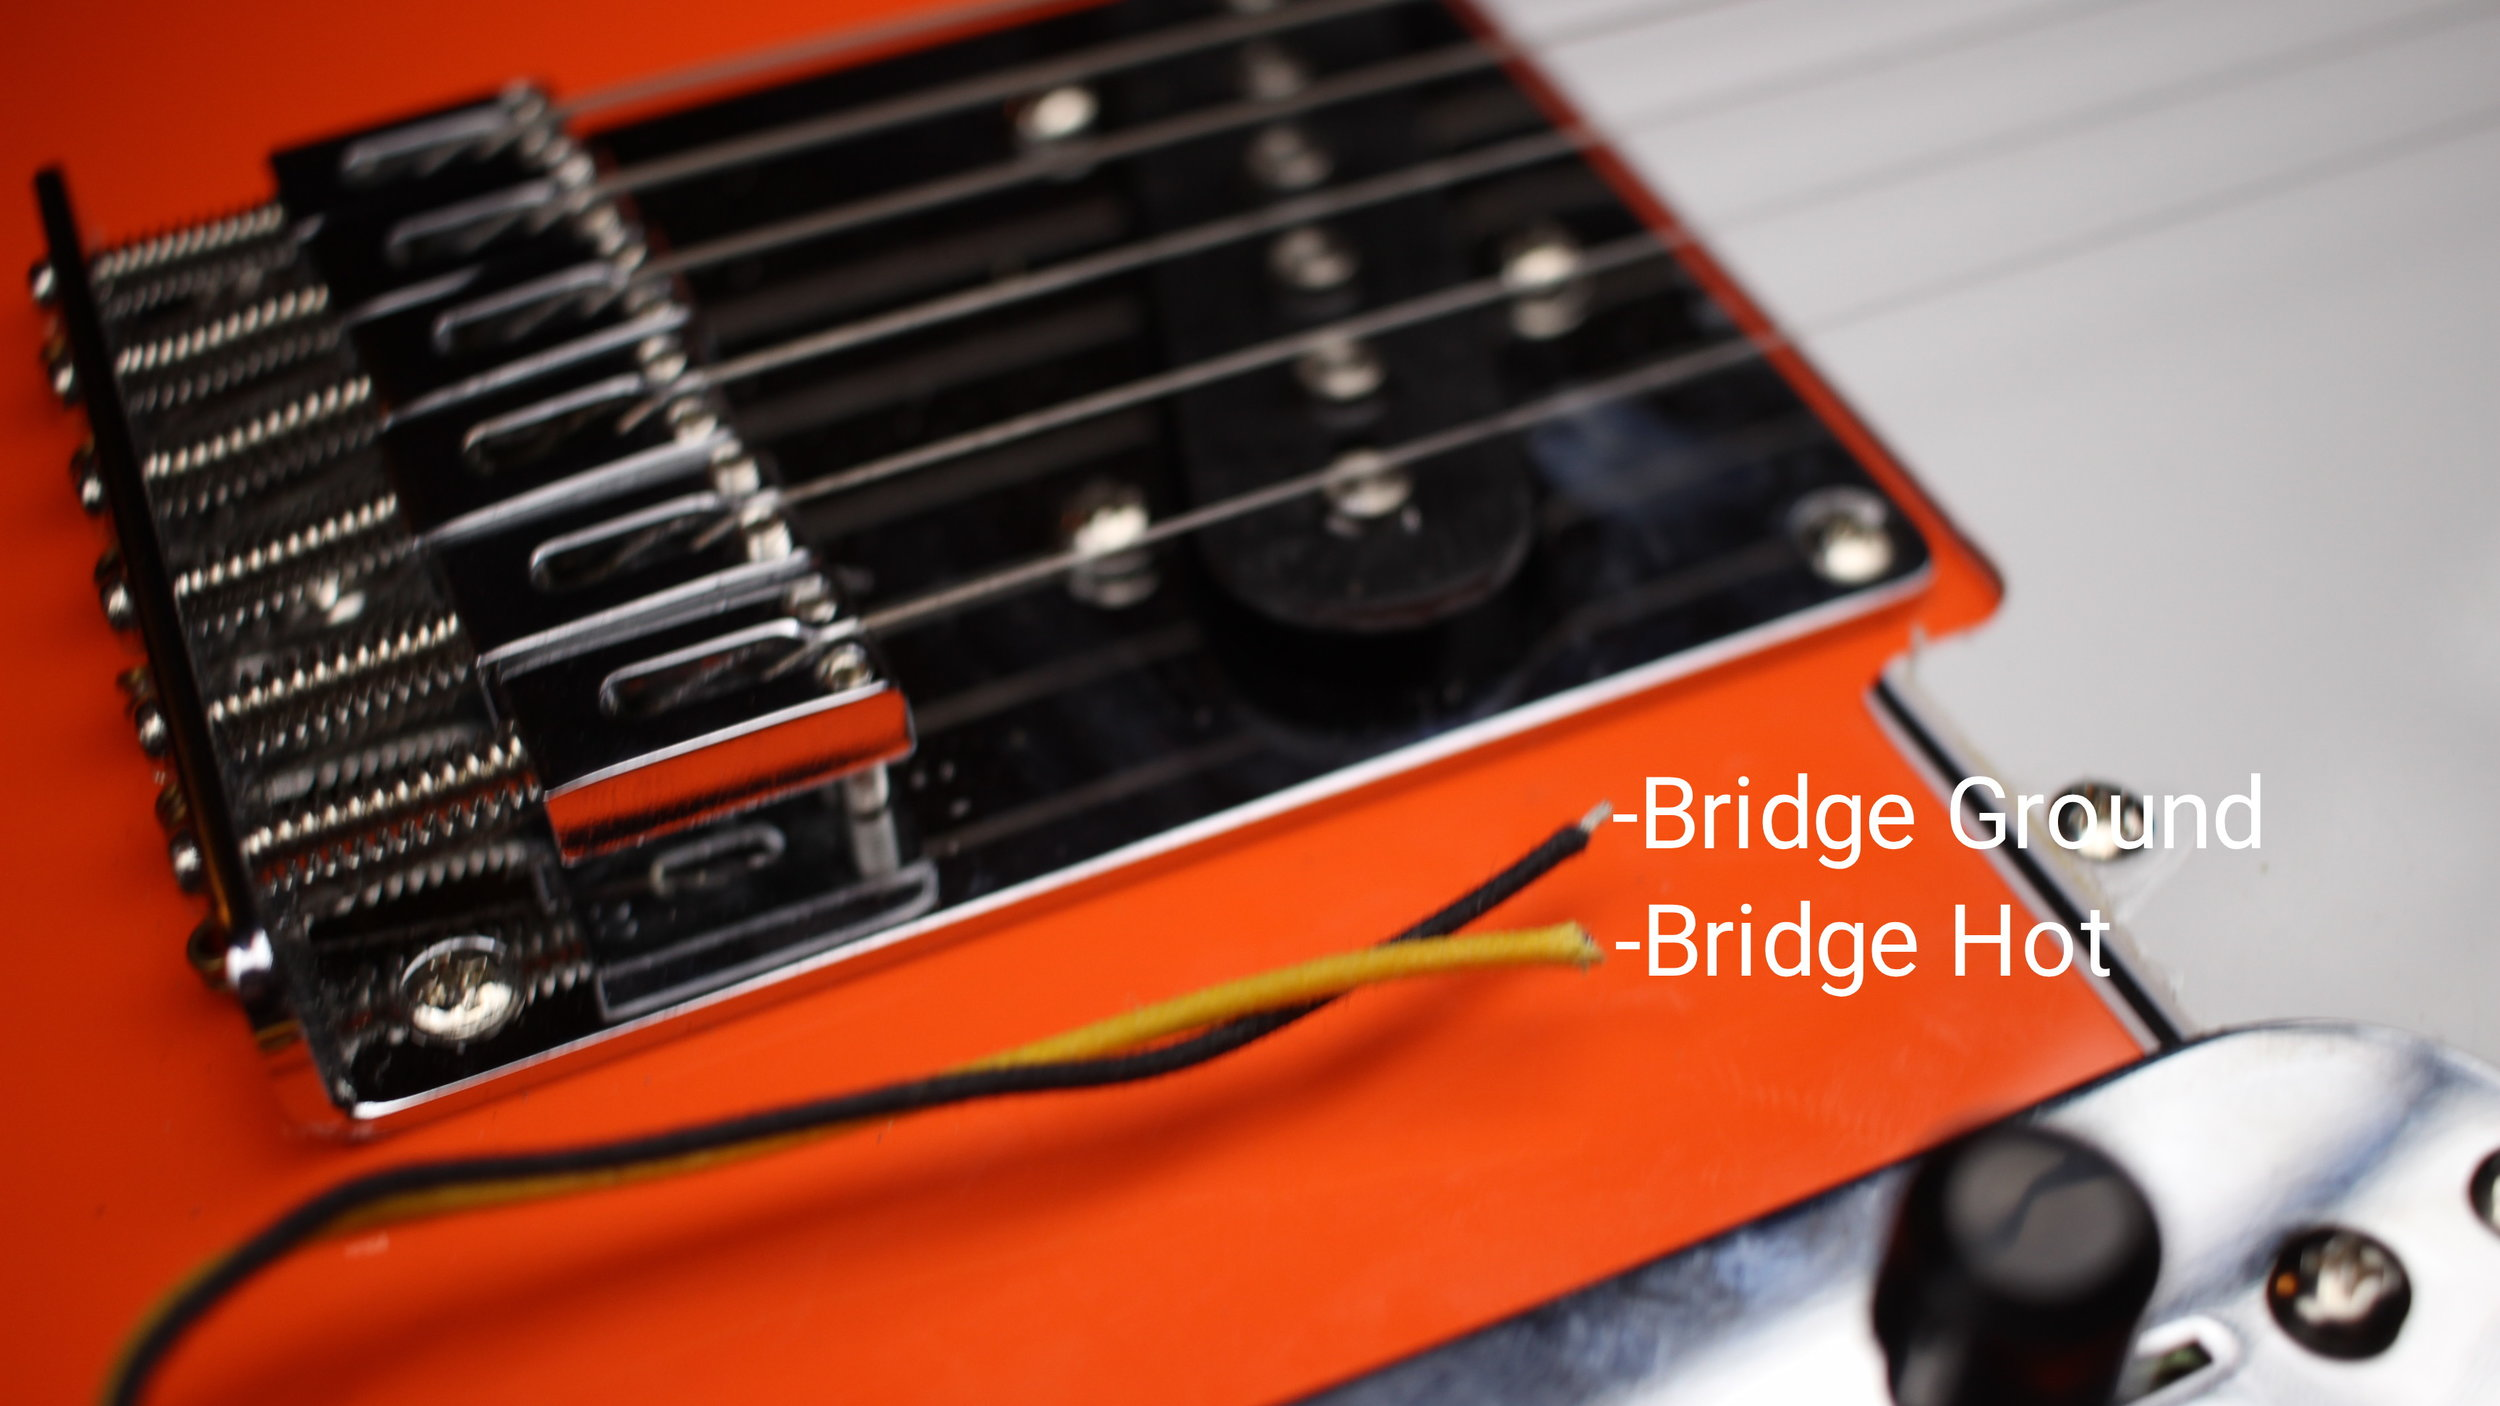 Tele bridge pickup wires (1).JPG